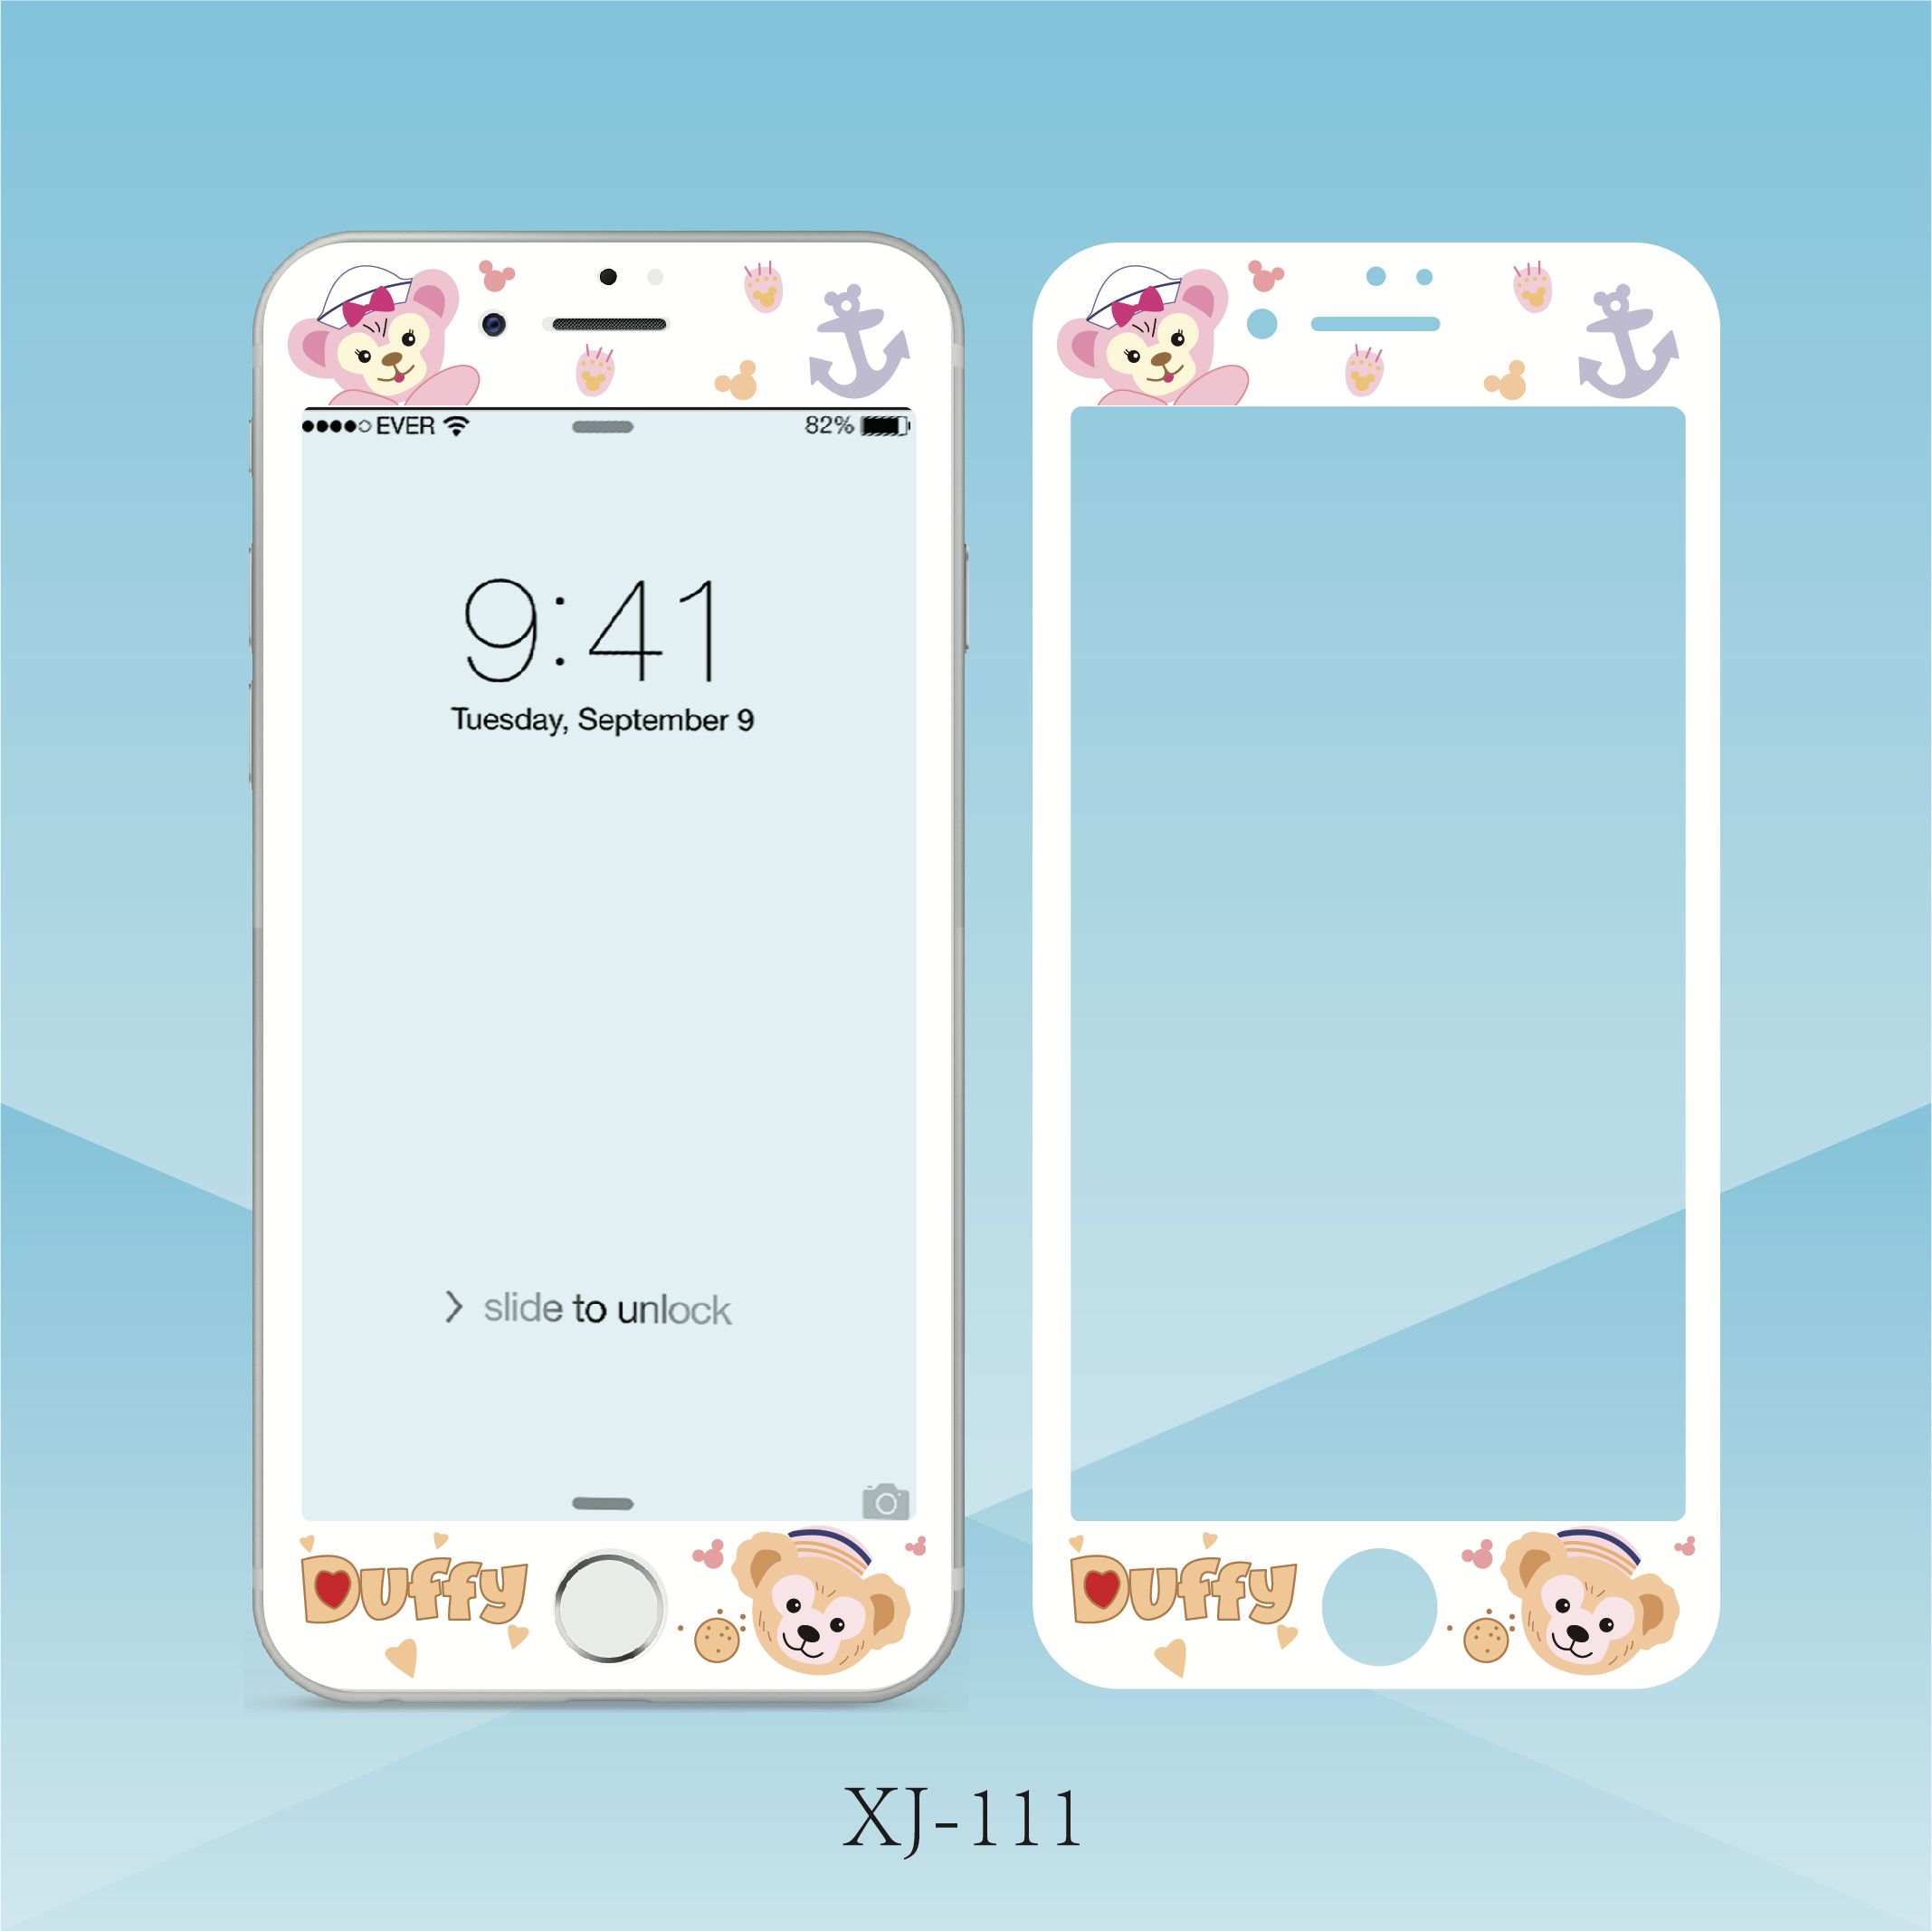 US $3 14 26% OFF Duffy Bear Cinnamoroll Stitch Totoro Pattern Screen  Protector Tempered Glass For iPhone 6 6s Plus 7 8 plus Protective Film-in  Phone